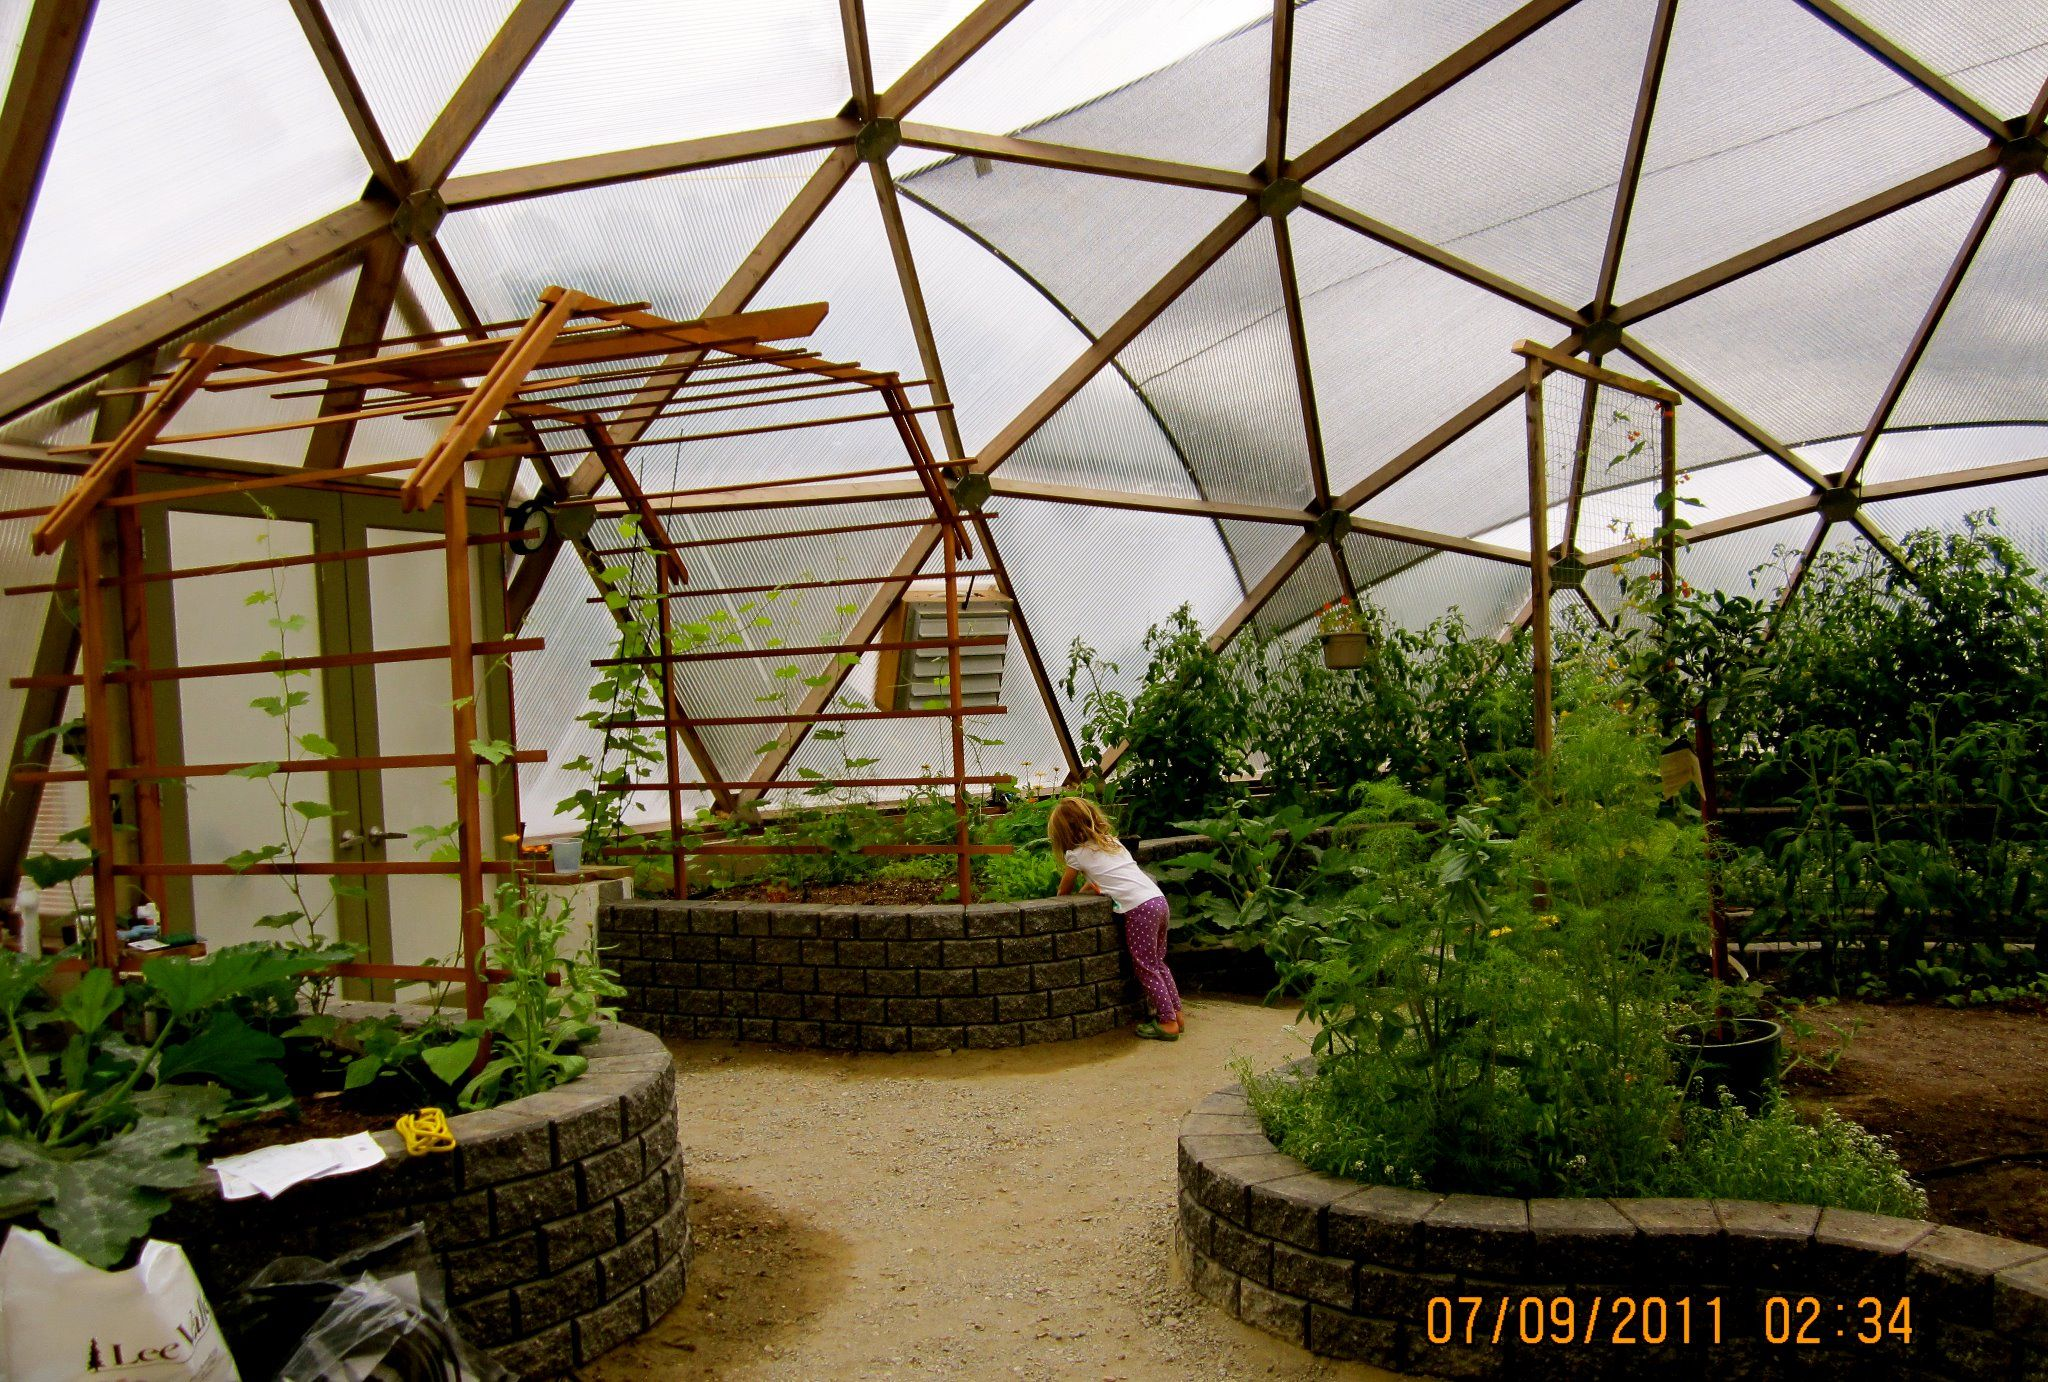 green house dome for green plants made from wood material tropical greenhouse dome design garden design - Dome Greenhouse Designs